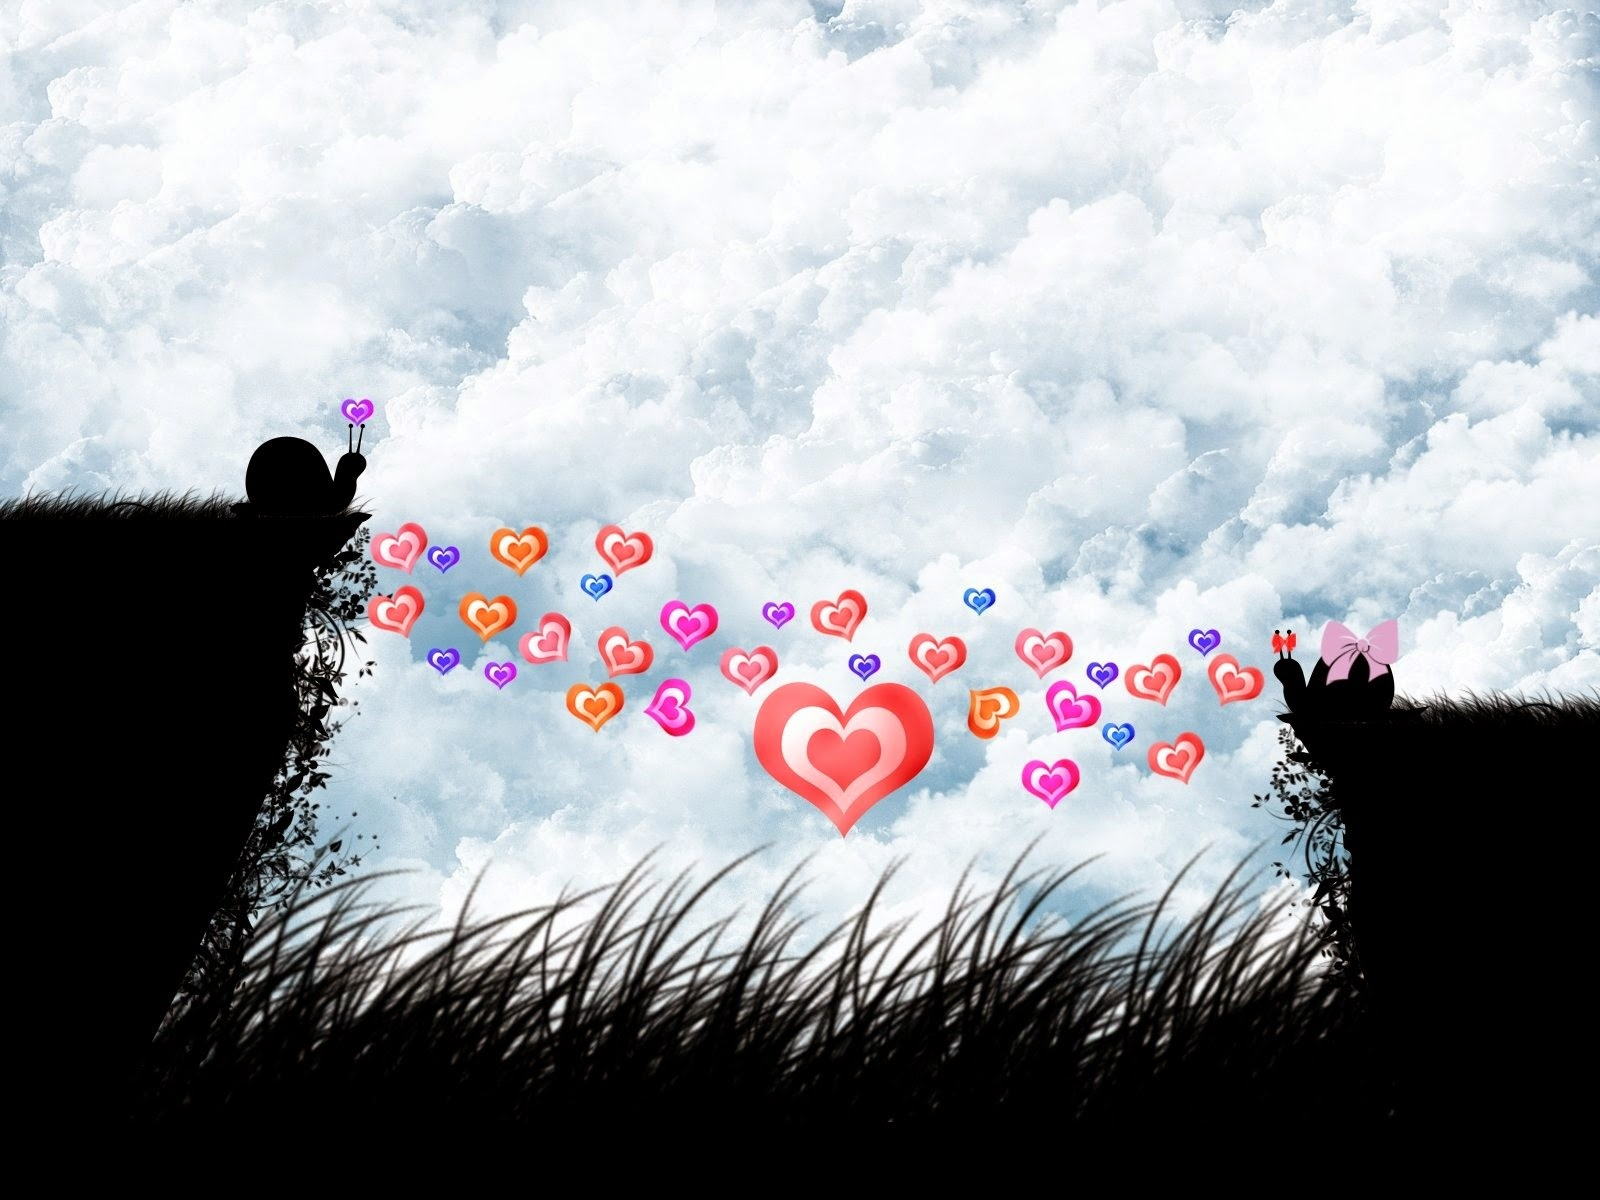 Collection of Best Love Wallpaper on HDWallpapers